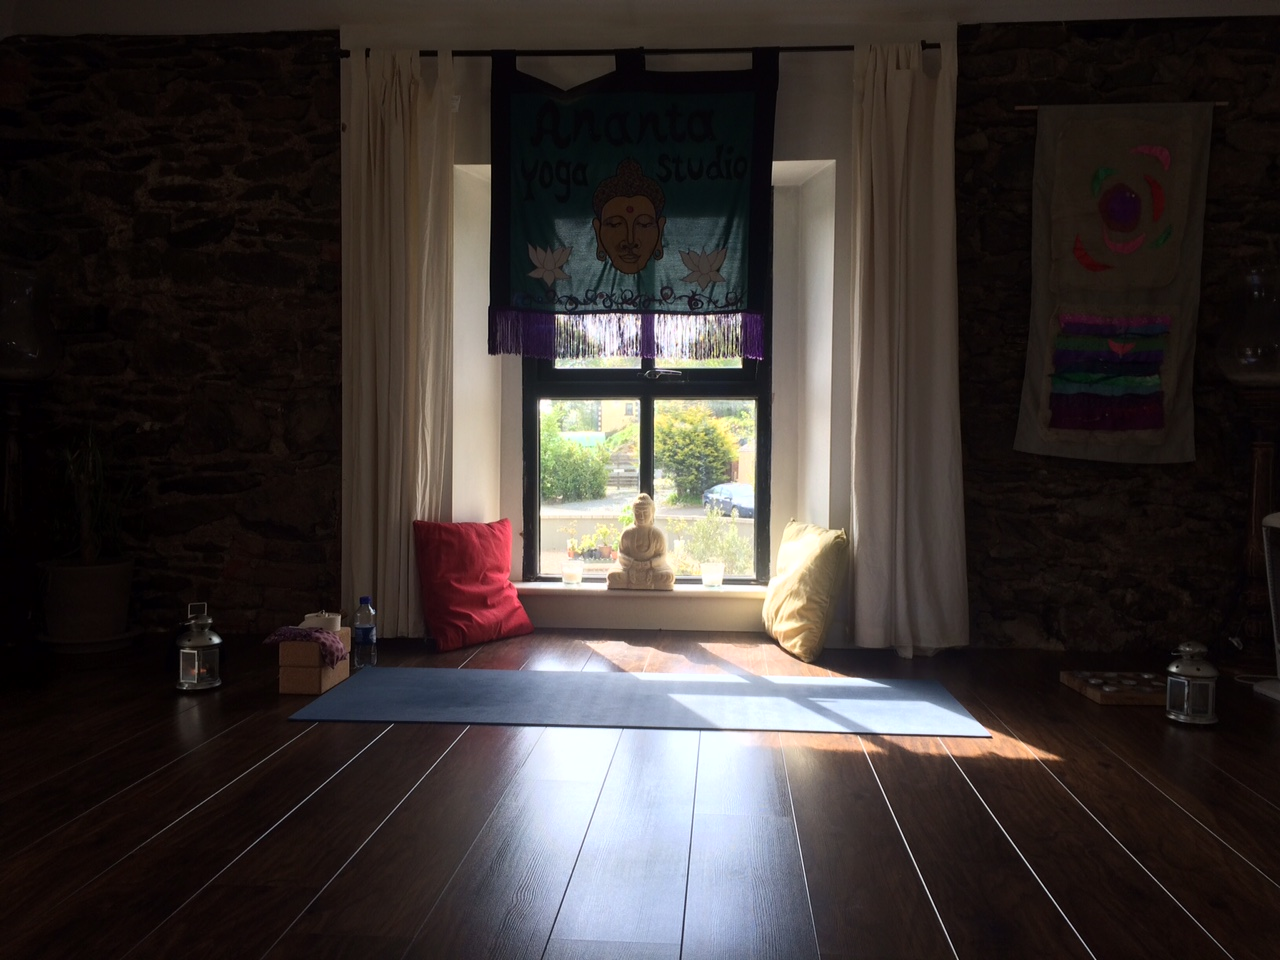 Bliss to find a proper, beautiful yoga studio while on the road. It doesn't happen often when we travel from small mountain town to the next. A very welcome session with Hannah & Kelli indeed.